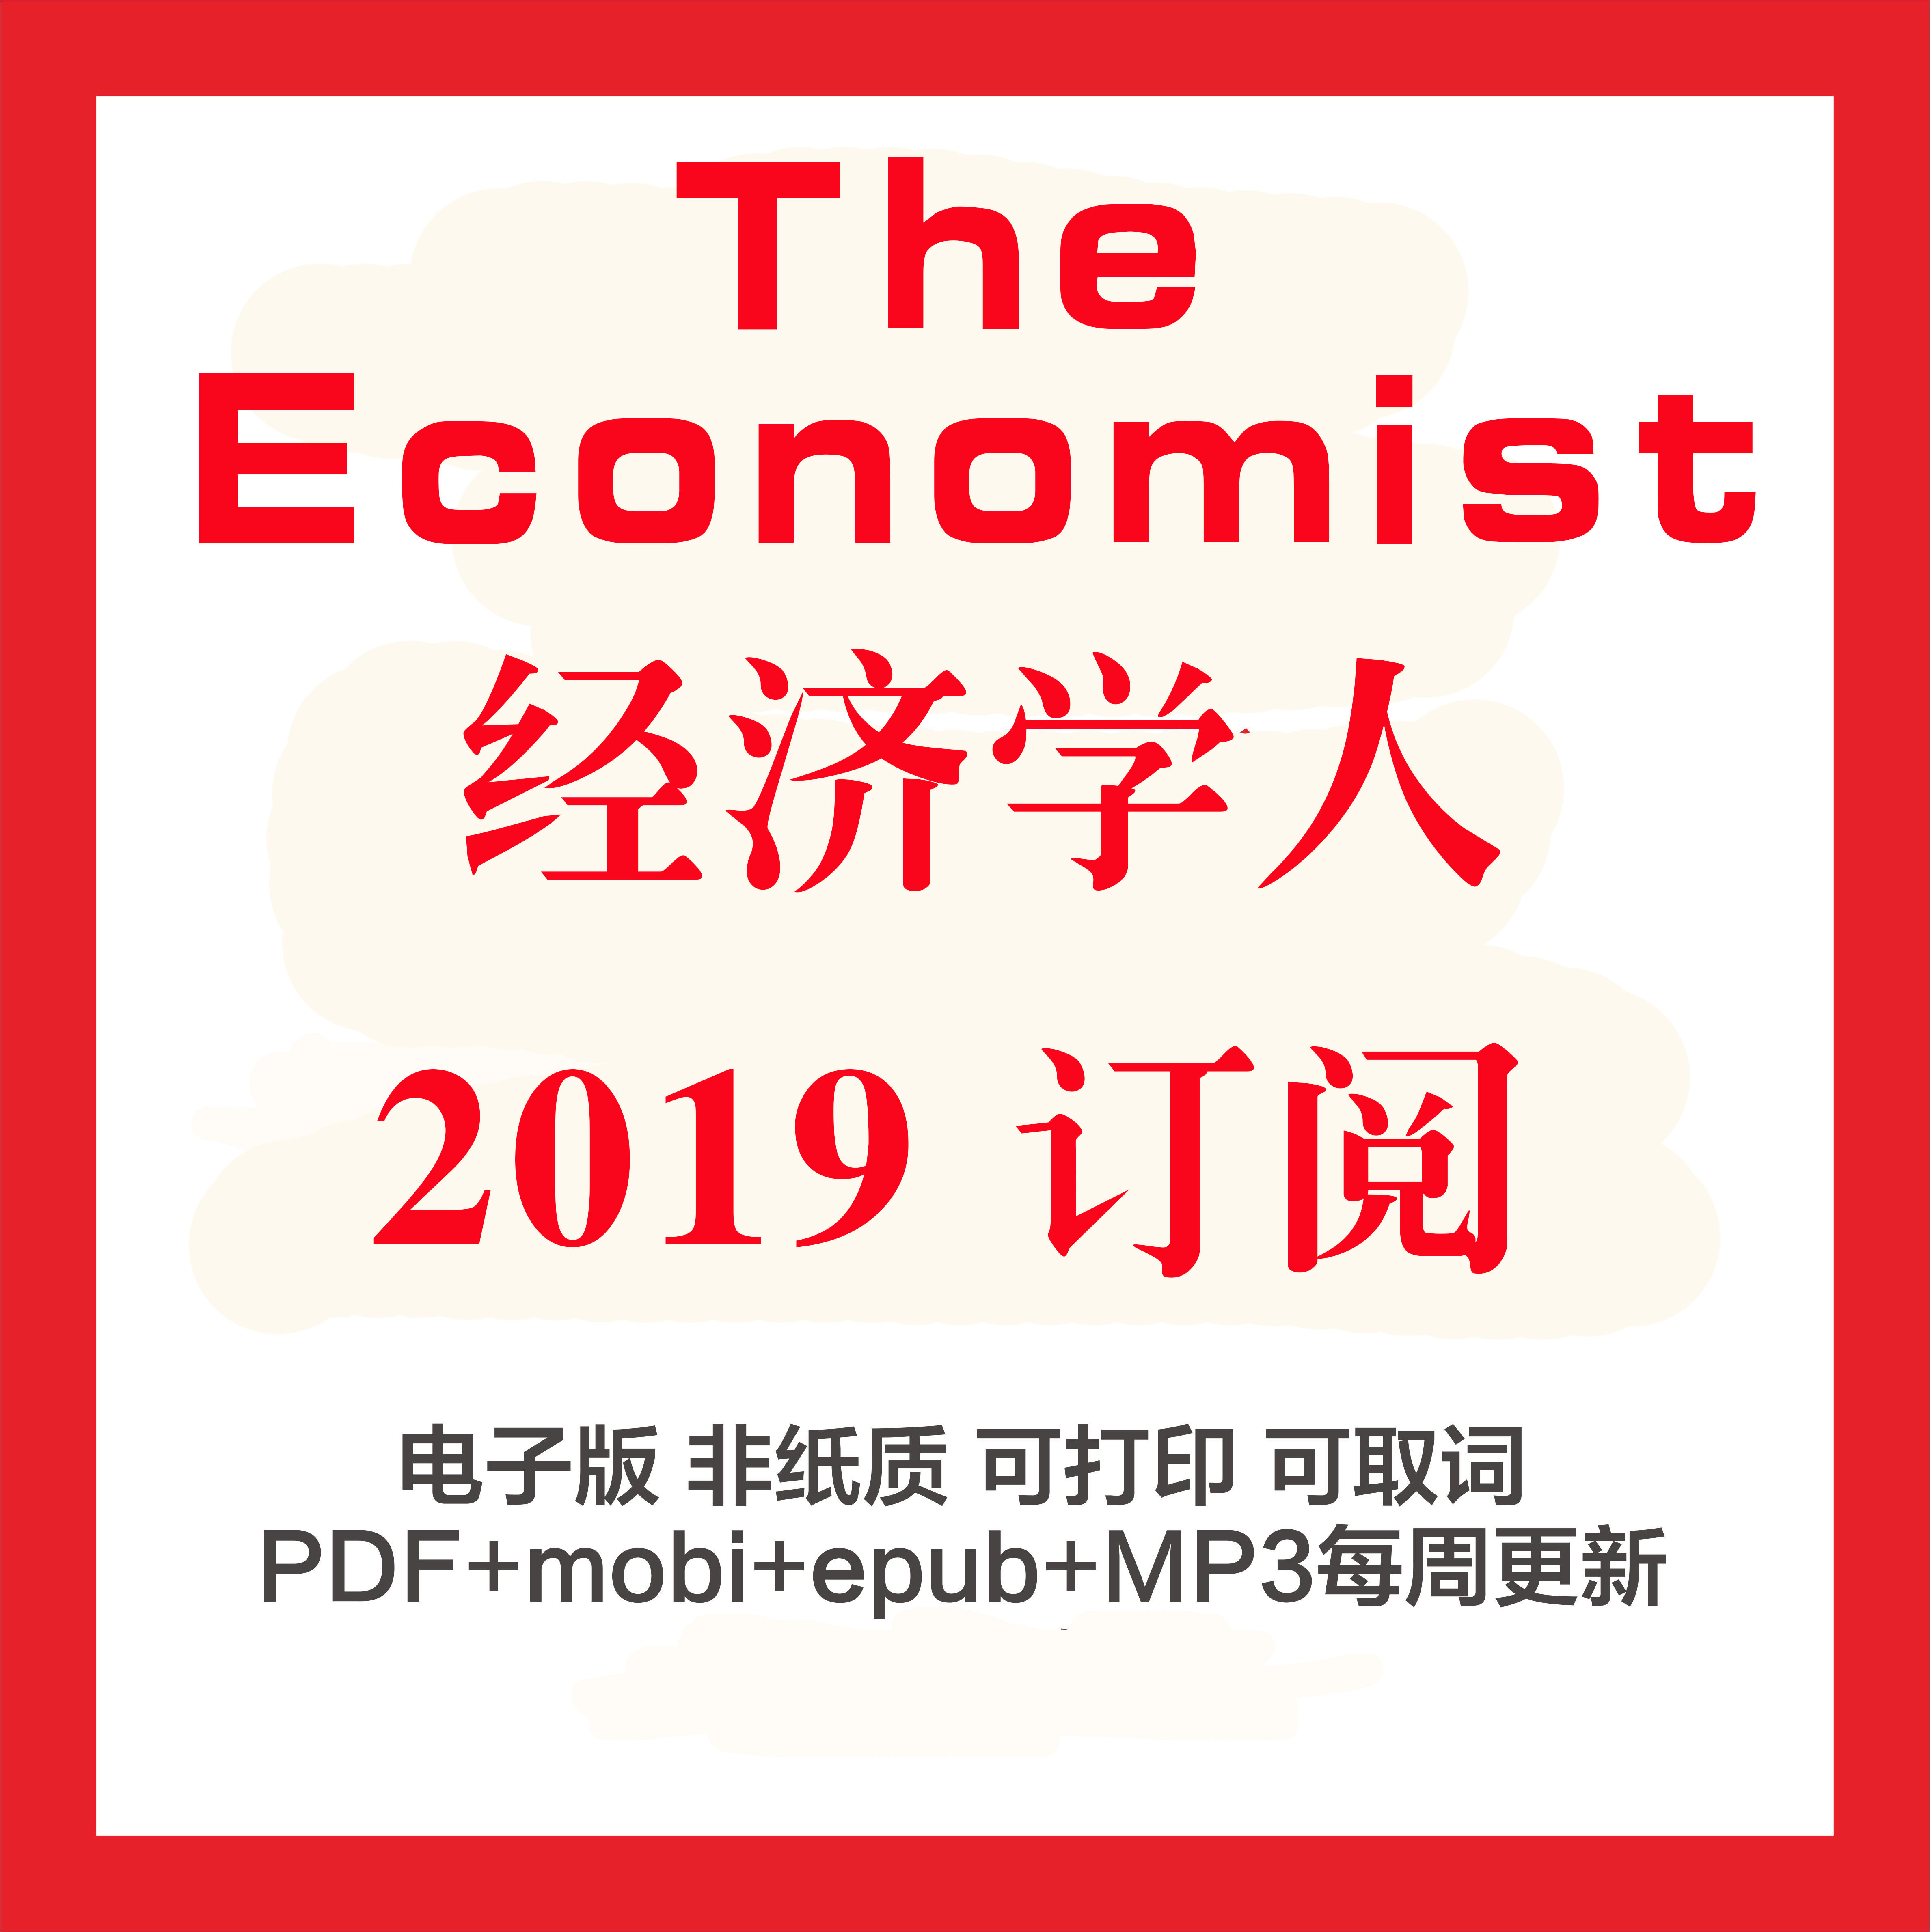 <strong>The Economist 经济学人 2019全年订阅合集</strong>